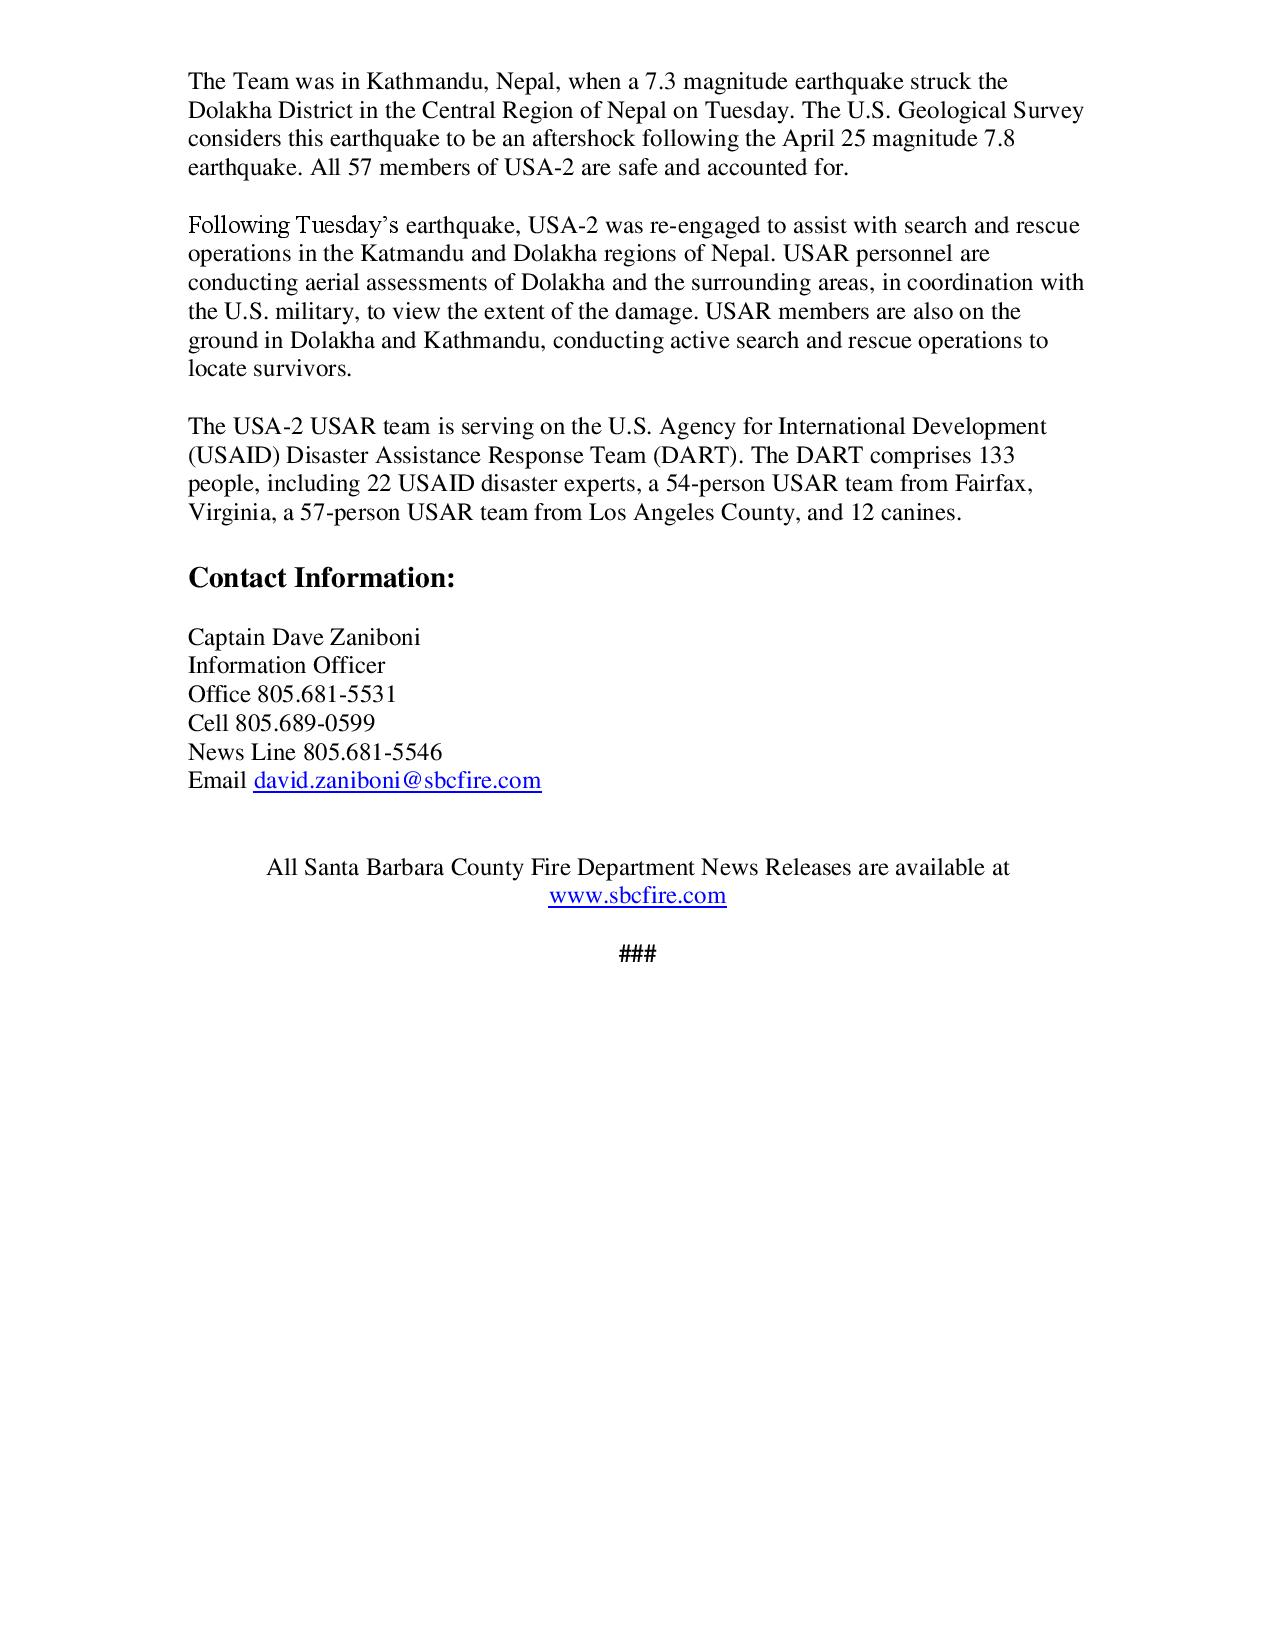 Firefighter Re-engages to Nepal-pg2